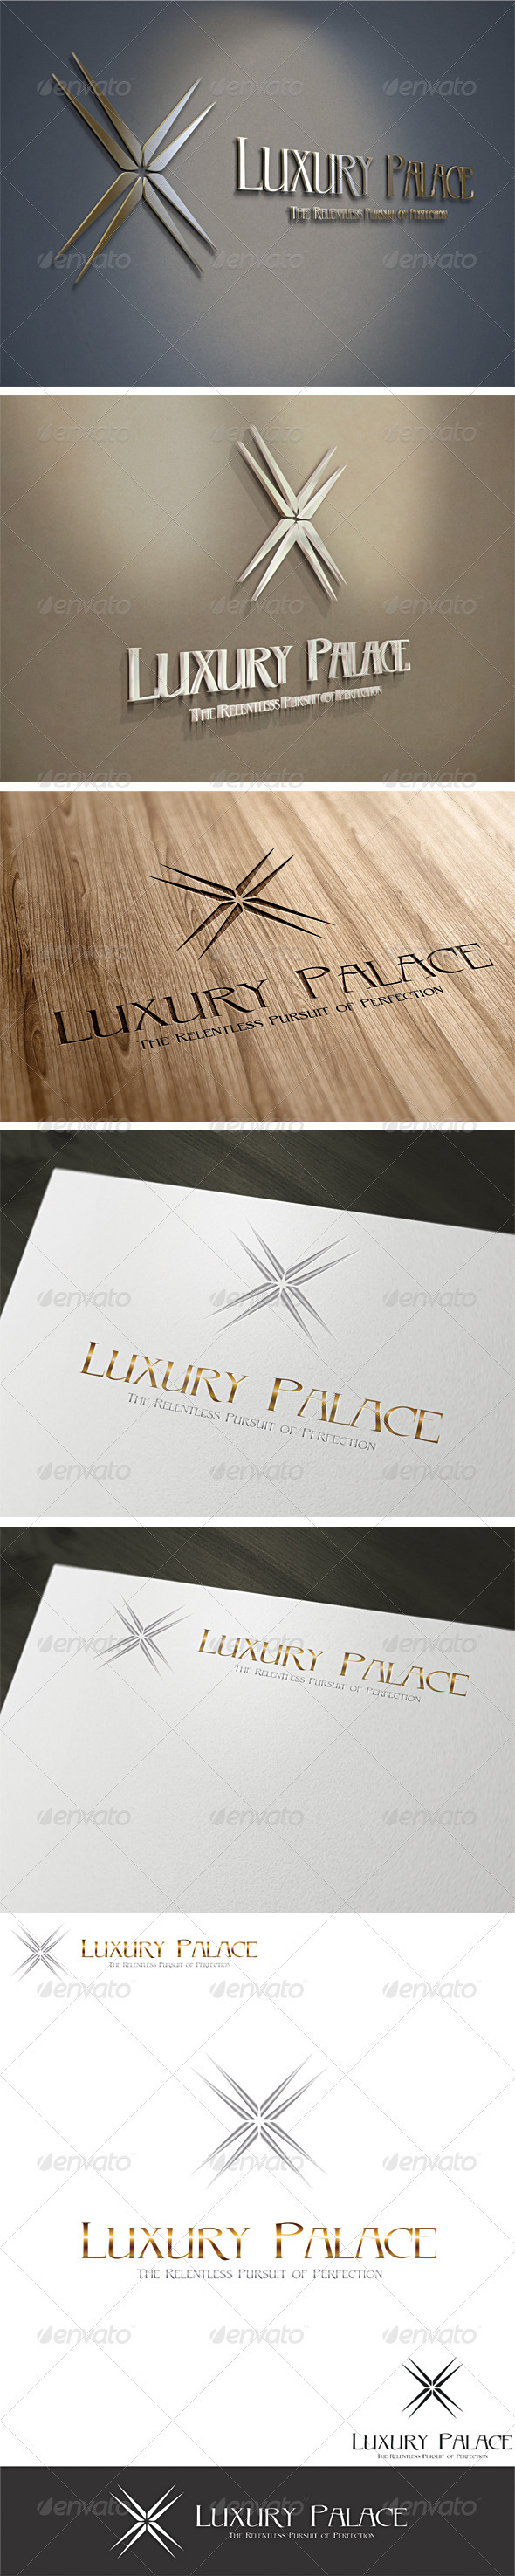 GraphicRiver 3D Luxury Hotels Logo Template 2504026